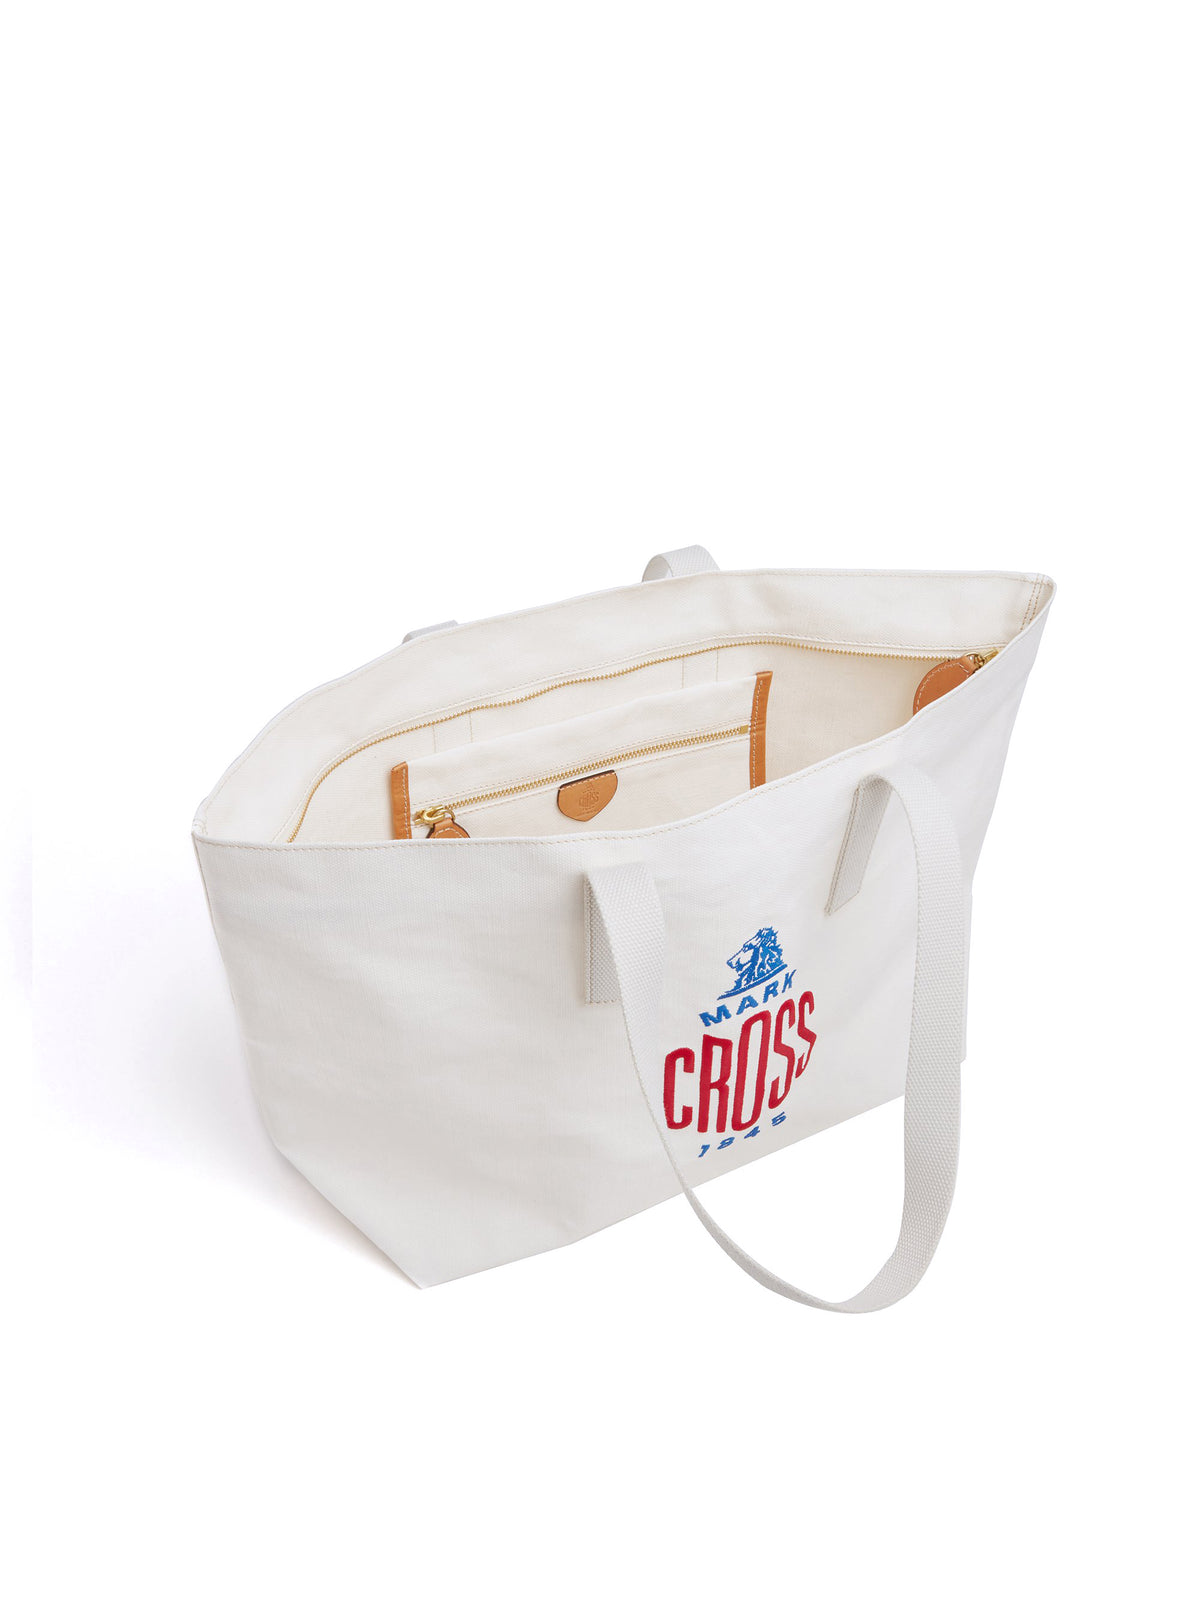 Mark Cross Weatherbird Canvas Small Tote Bag Canvas White Interior